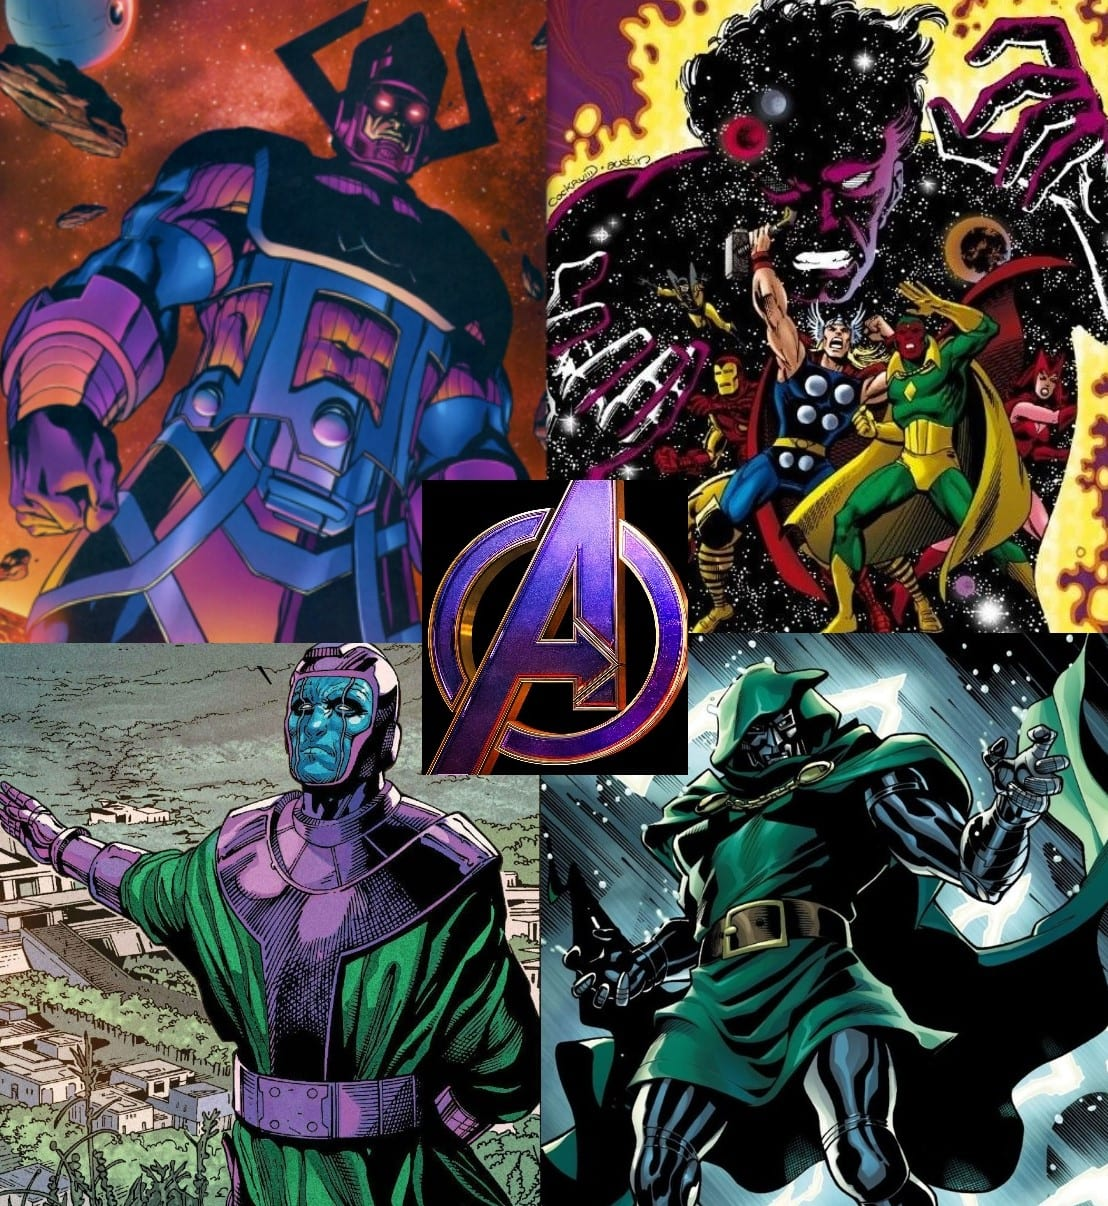 Who will be the next Avengers villain?